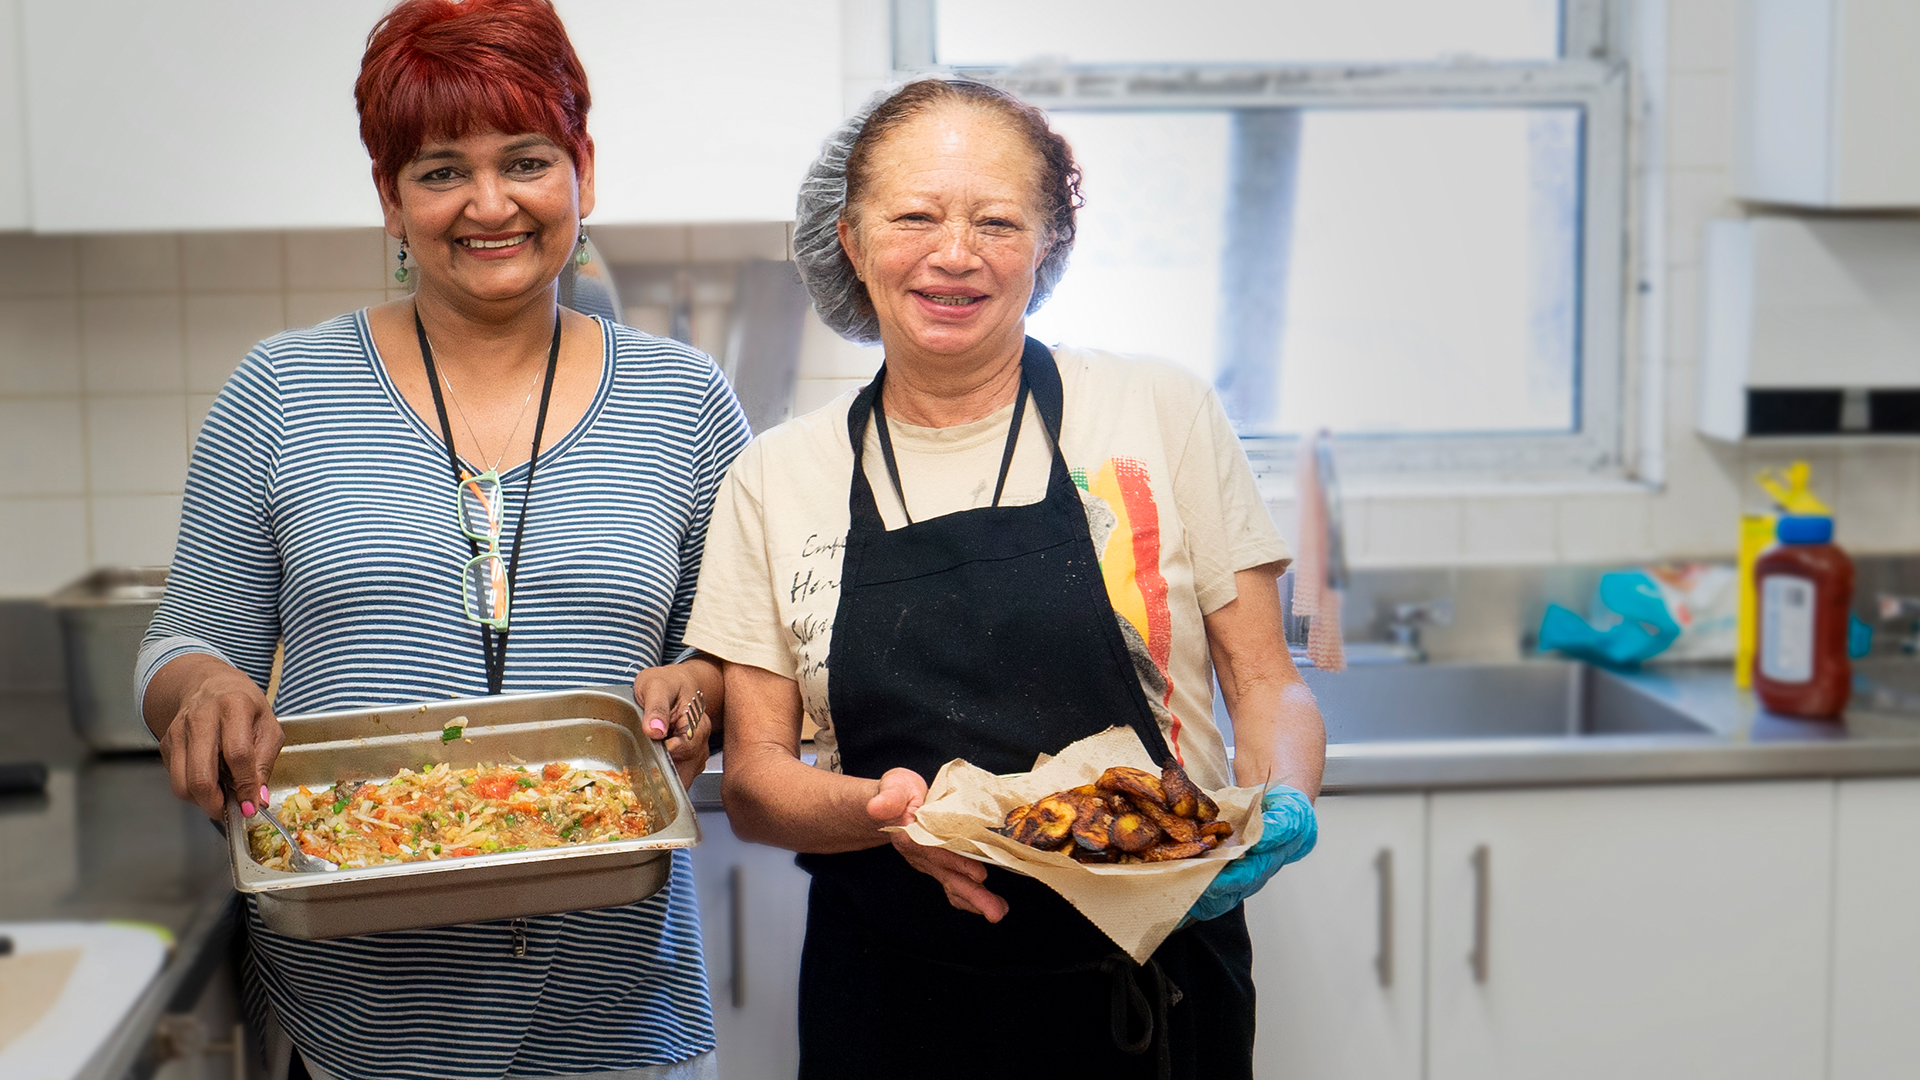 FOOD PROGRAM AT BAILEY HOUSE